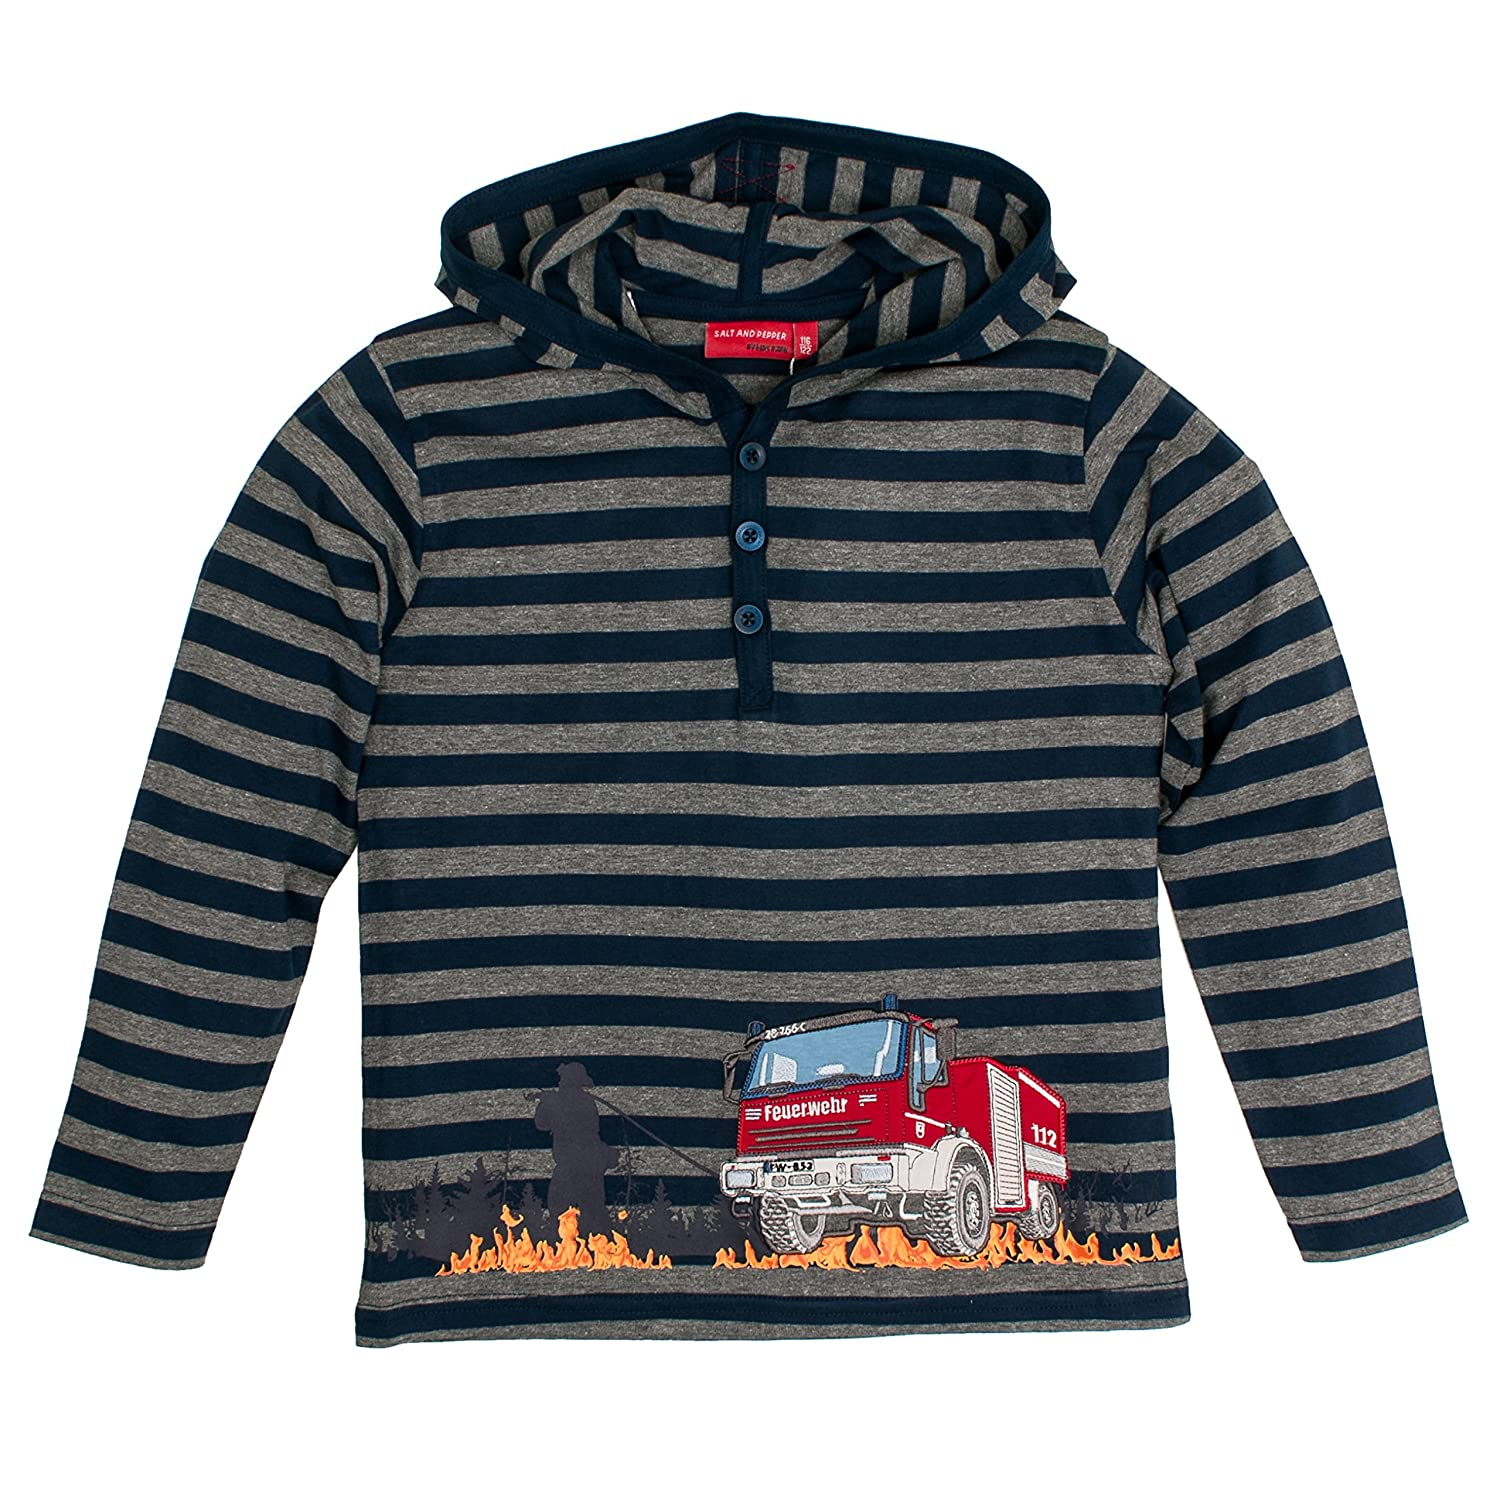 Salt & Pepper Boy's Fire Stripe Kap. Longsleeve T-Shirt SALT AND PEPPER 75111144